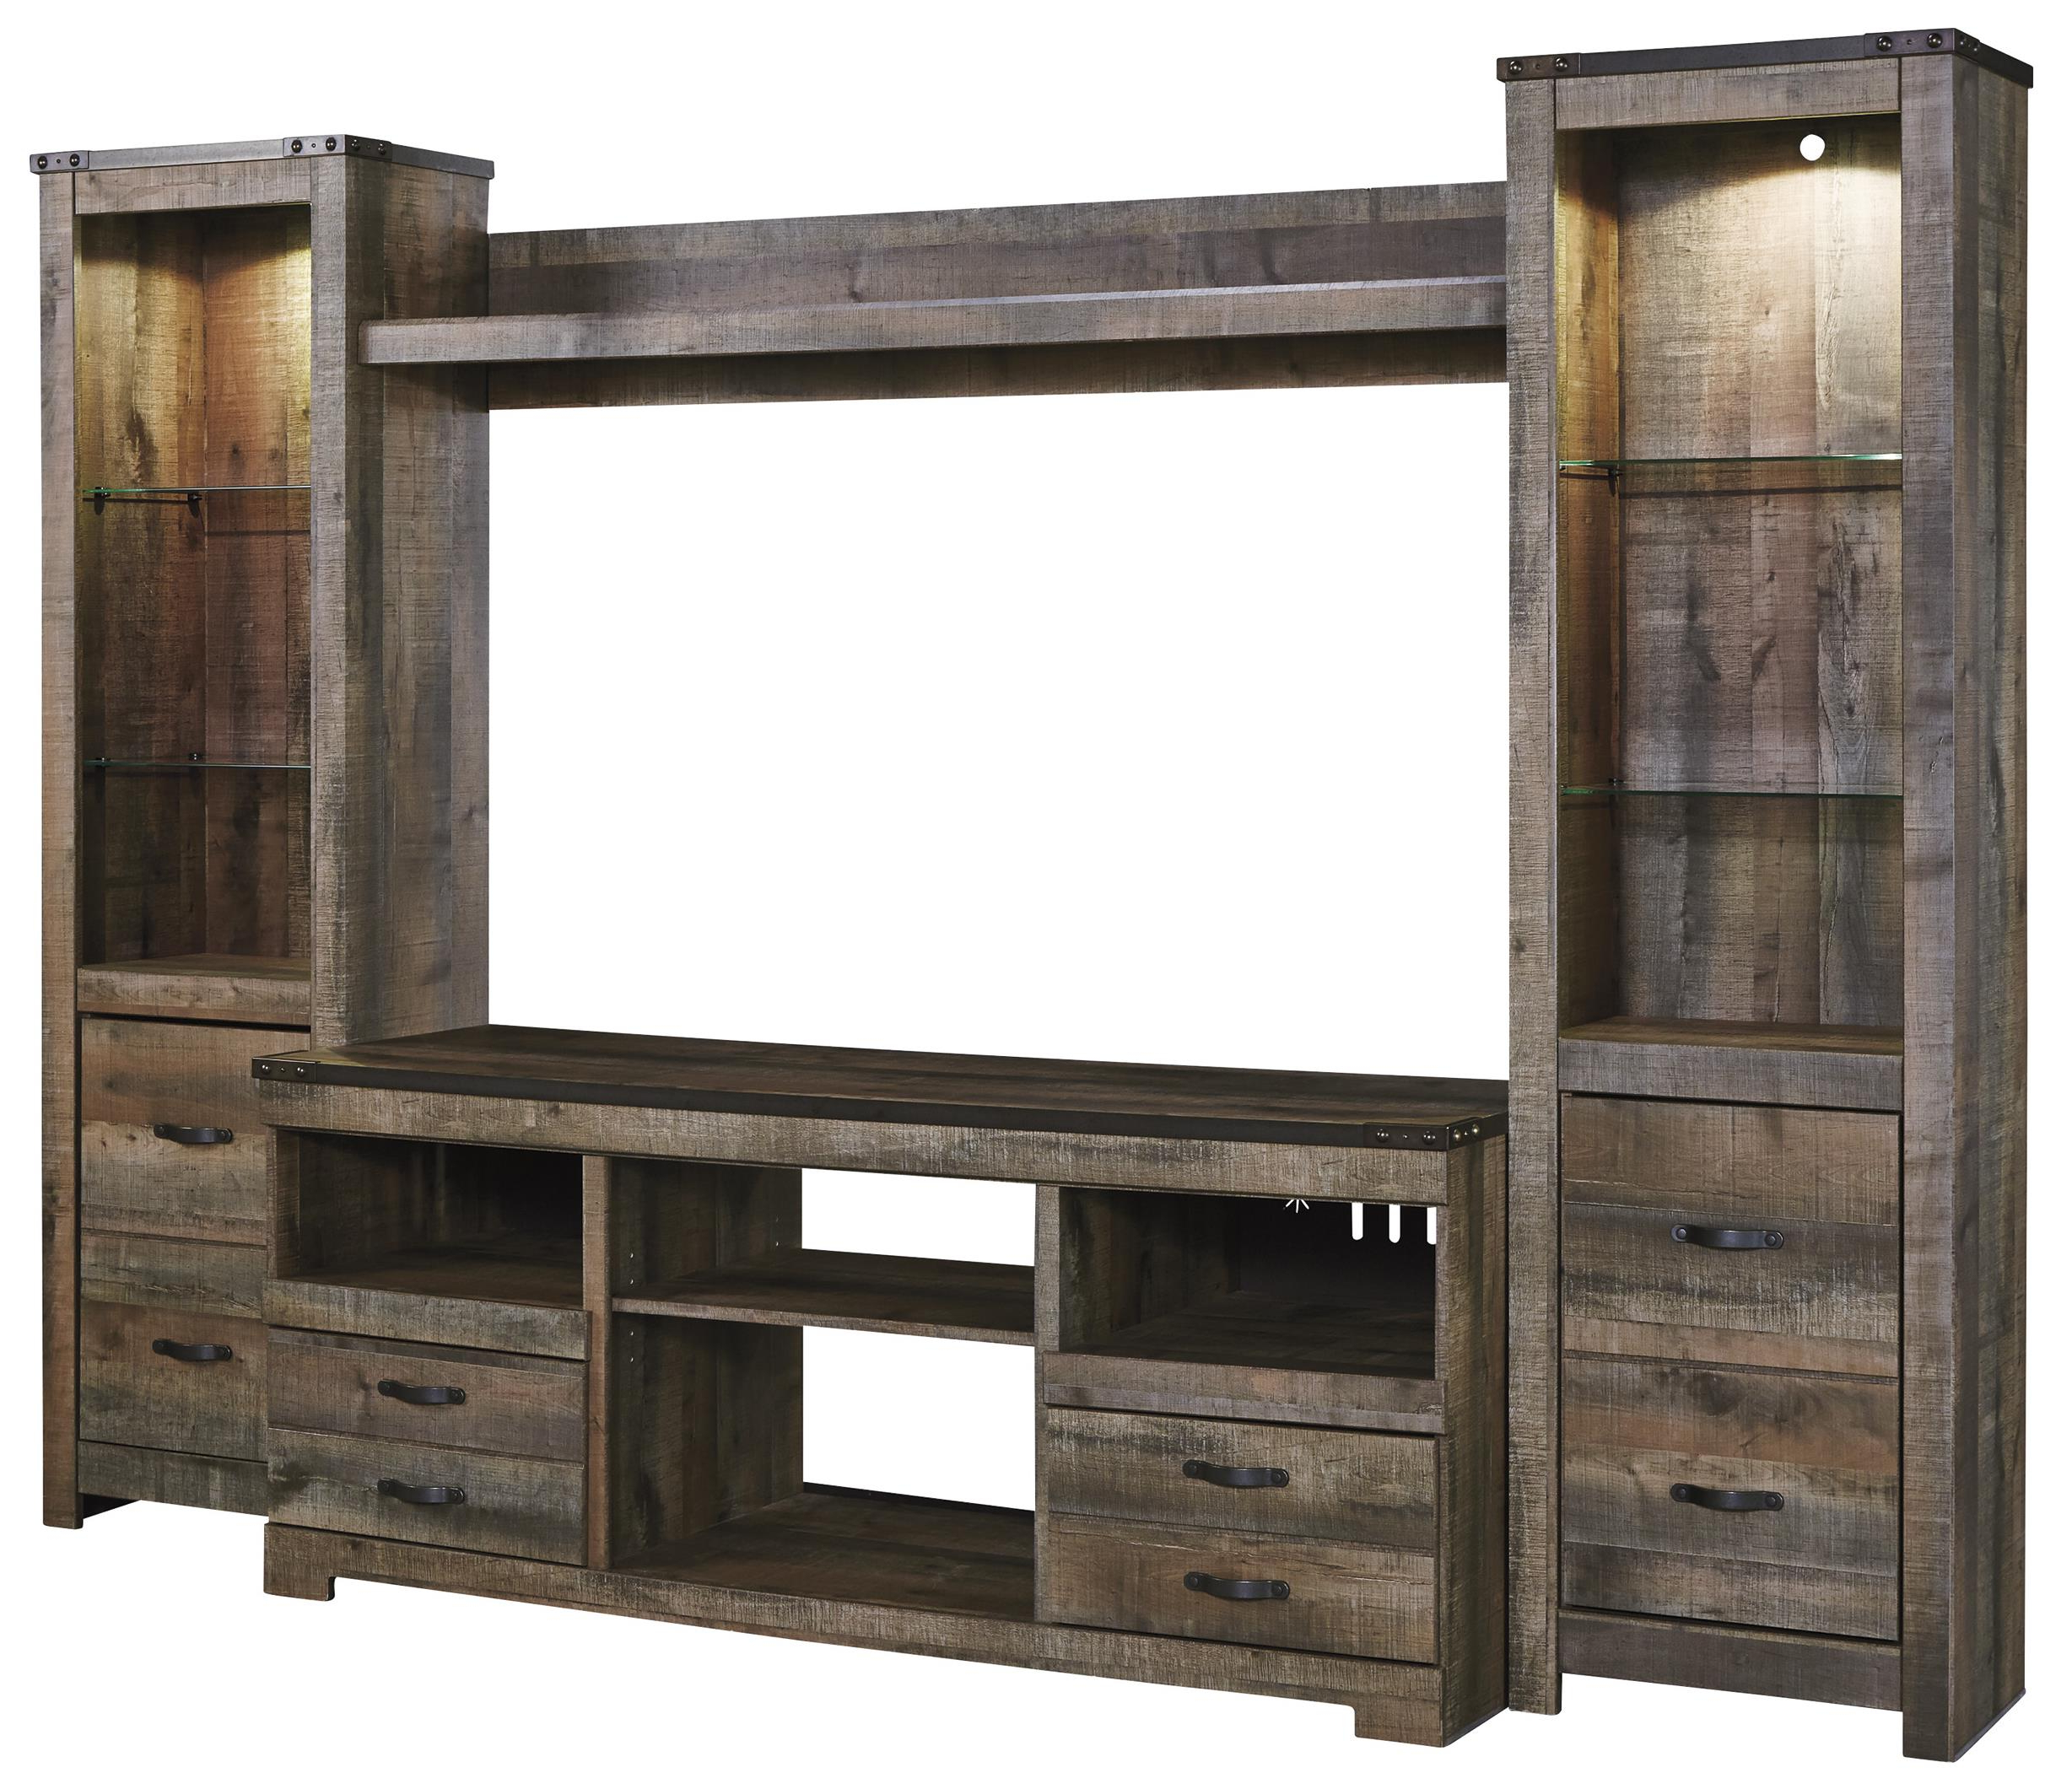 Newest Urban Rustic Rustic Large Tv Stand & 2 Tall Piers W/ Bridge In Rustic Tv Stands (Gallery 6 of 20)